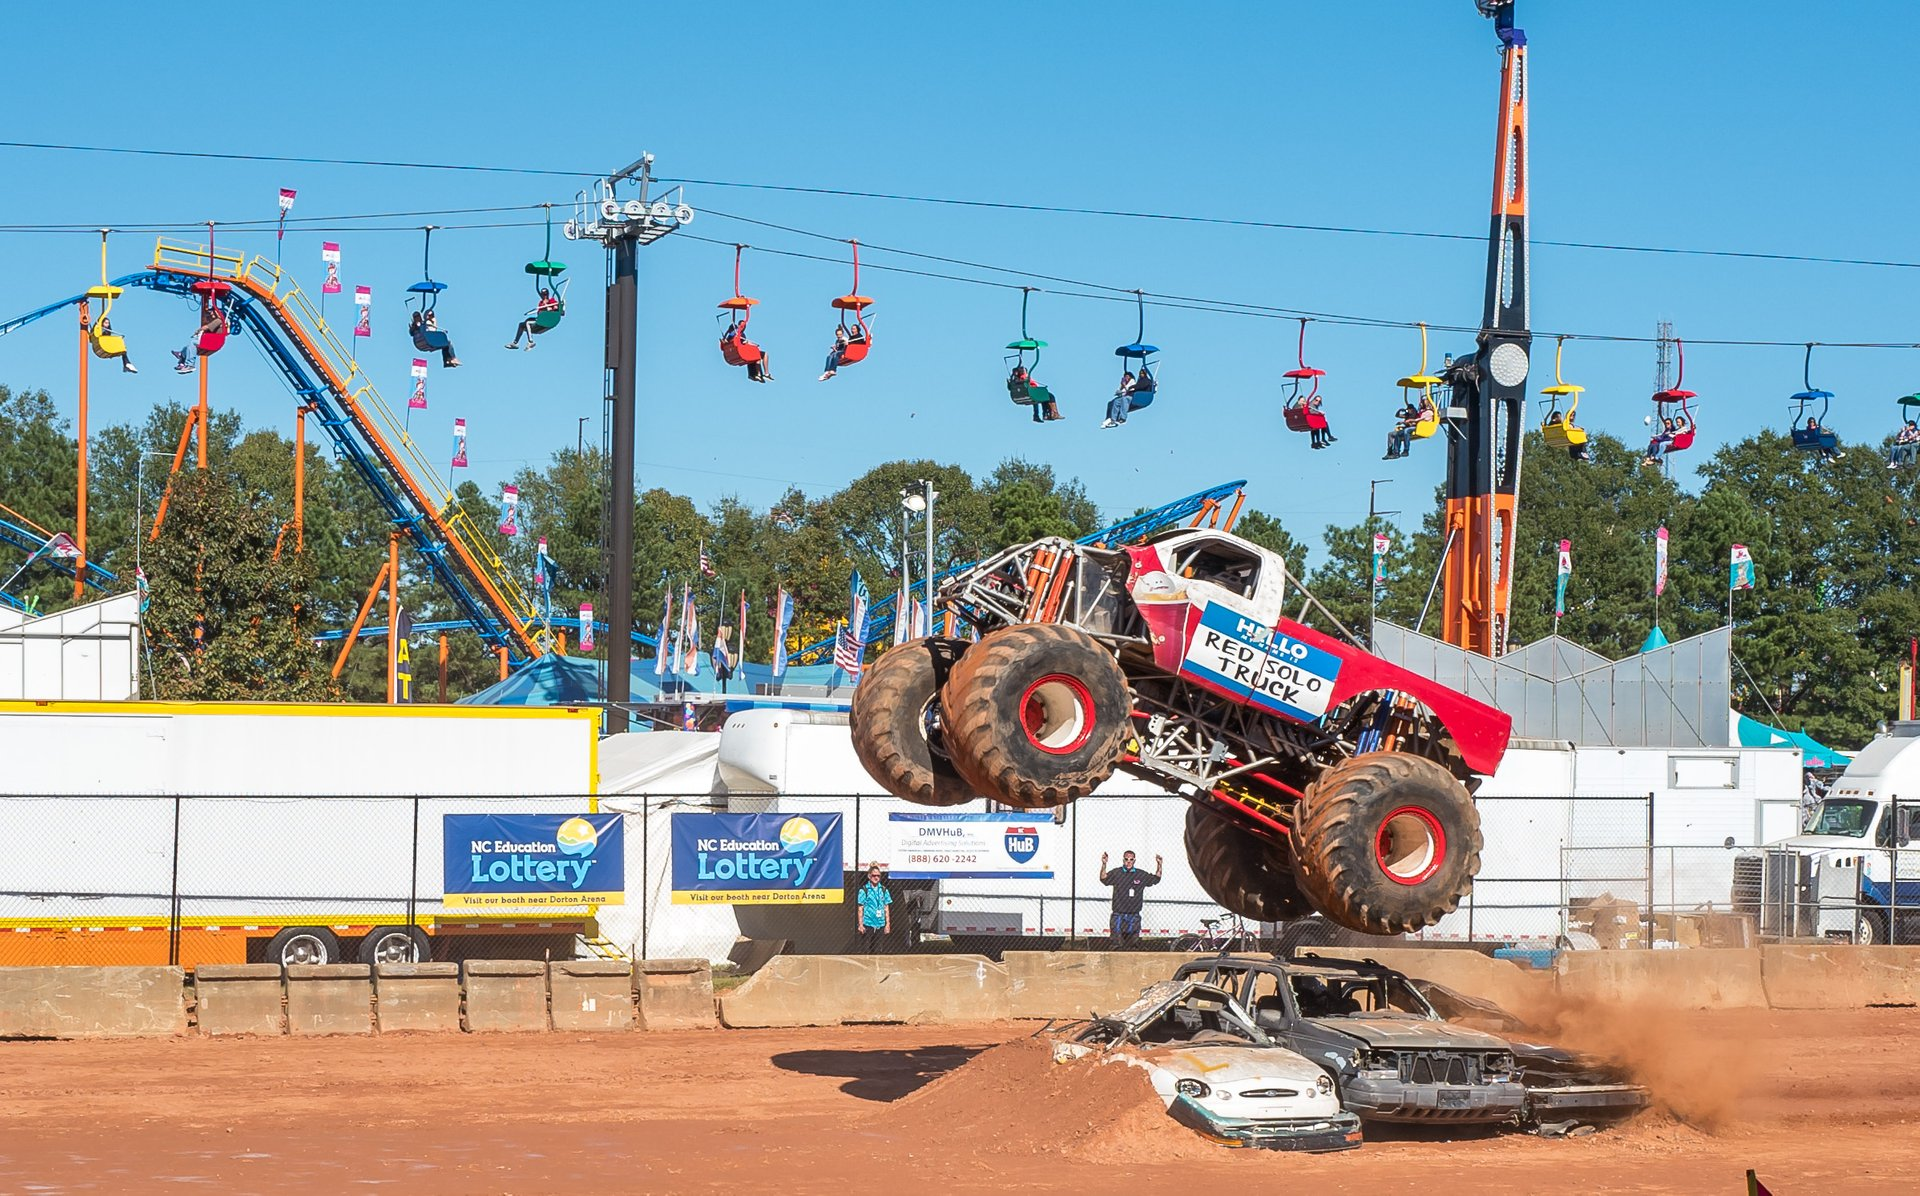 Best time for North Carolina State Fair in North Carolina 2020